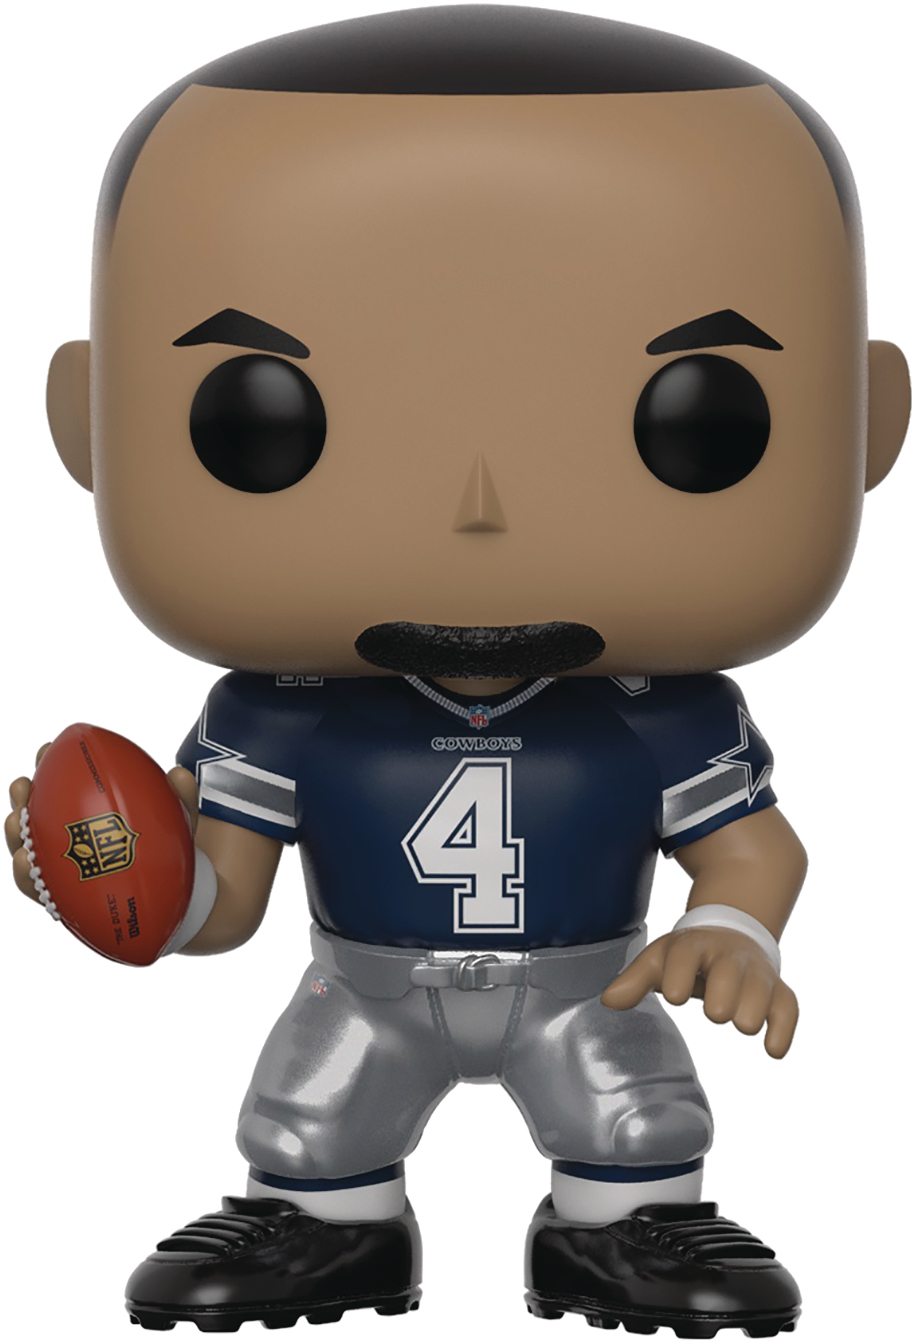 Funko Pop! Football Dak Prescott (Alternate Uniform)